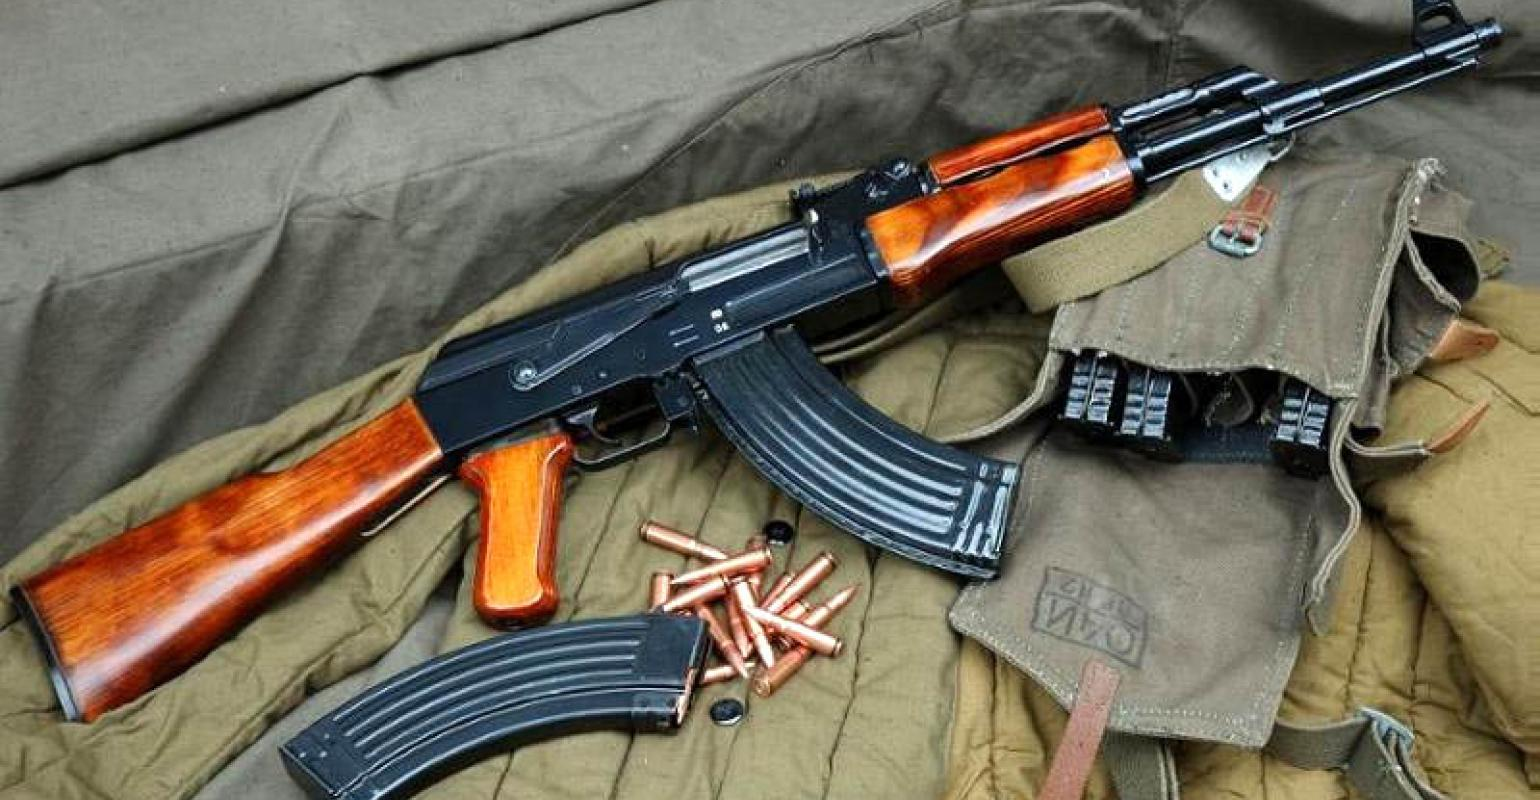 ak-47 Assault Rifle With Bullets, Notorious Armed Robber Gunned Down